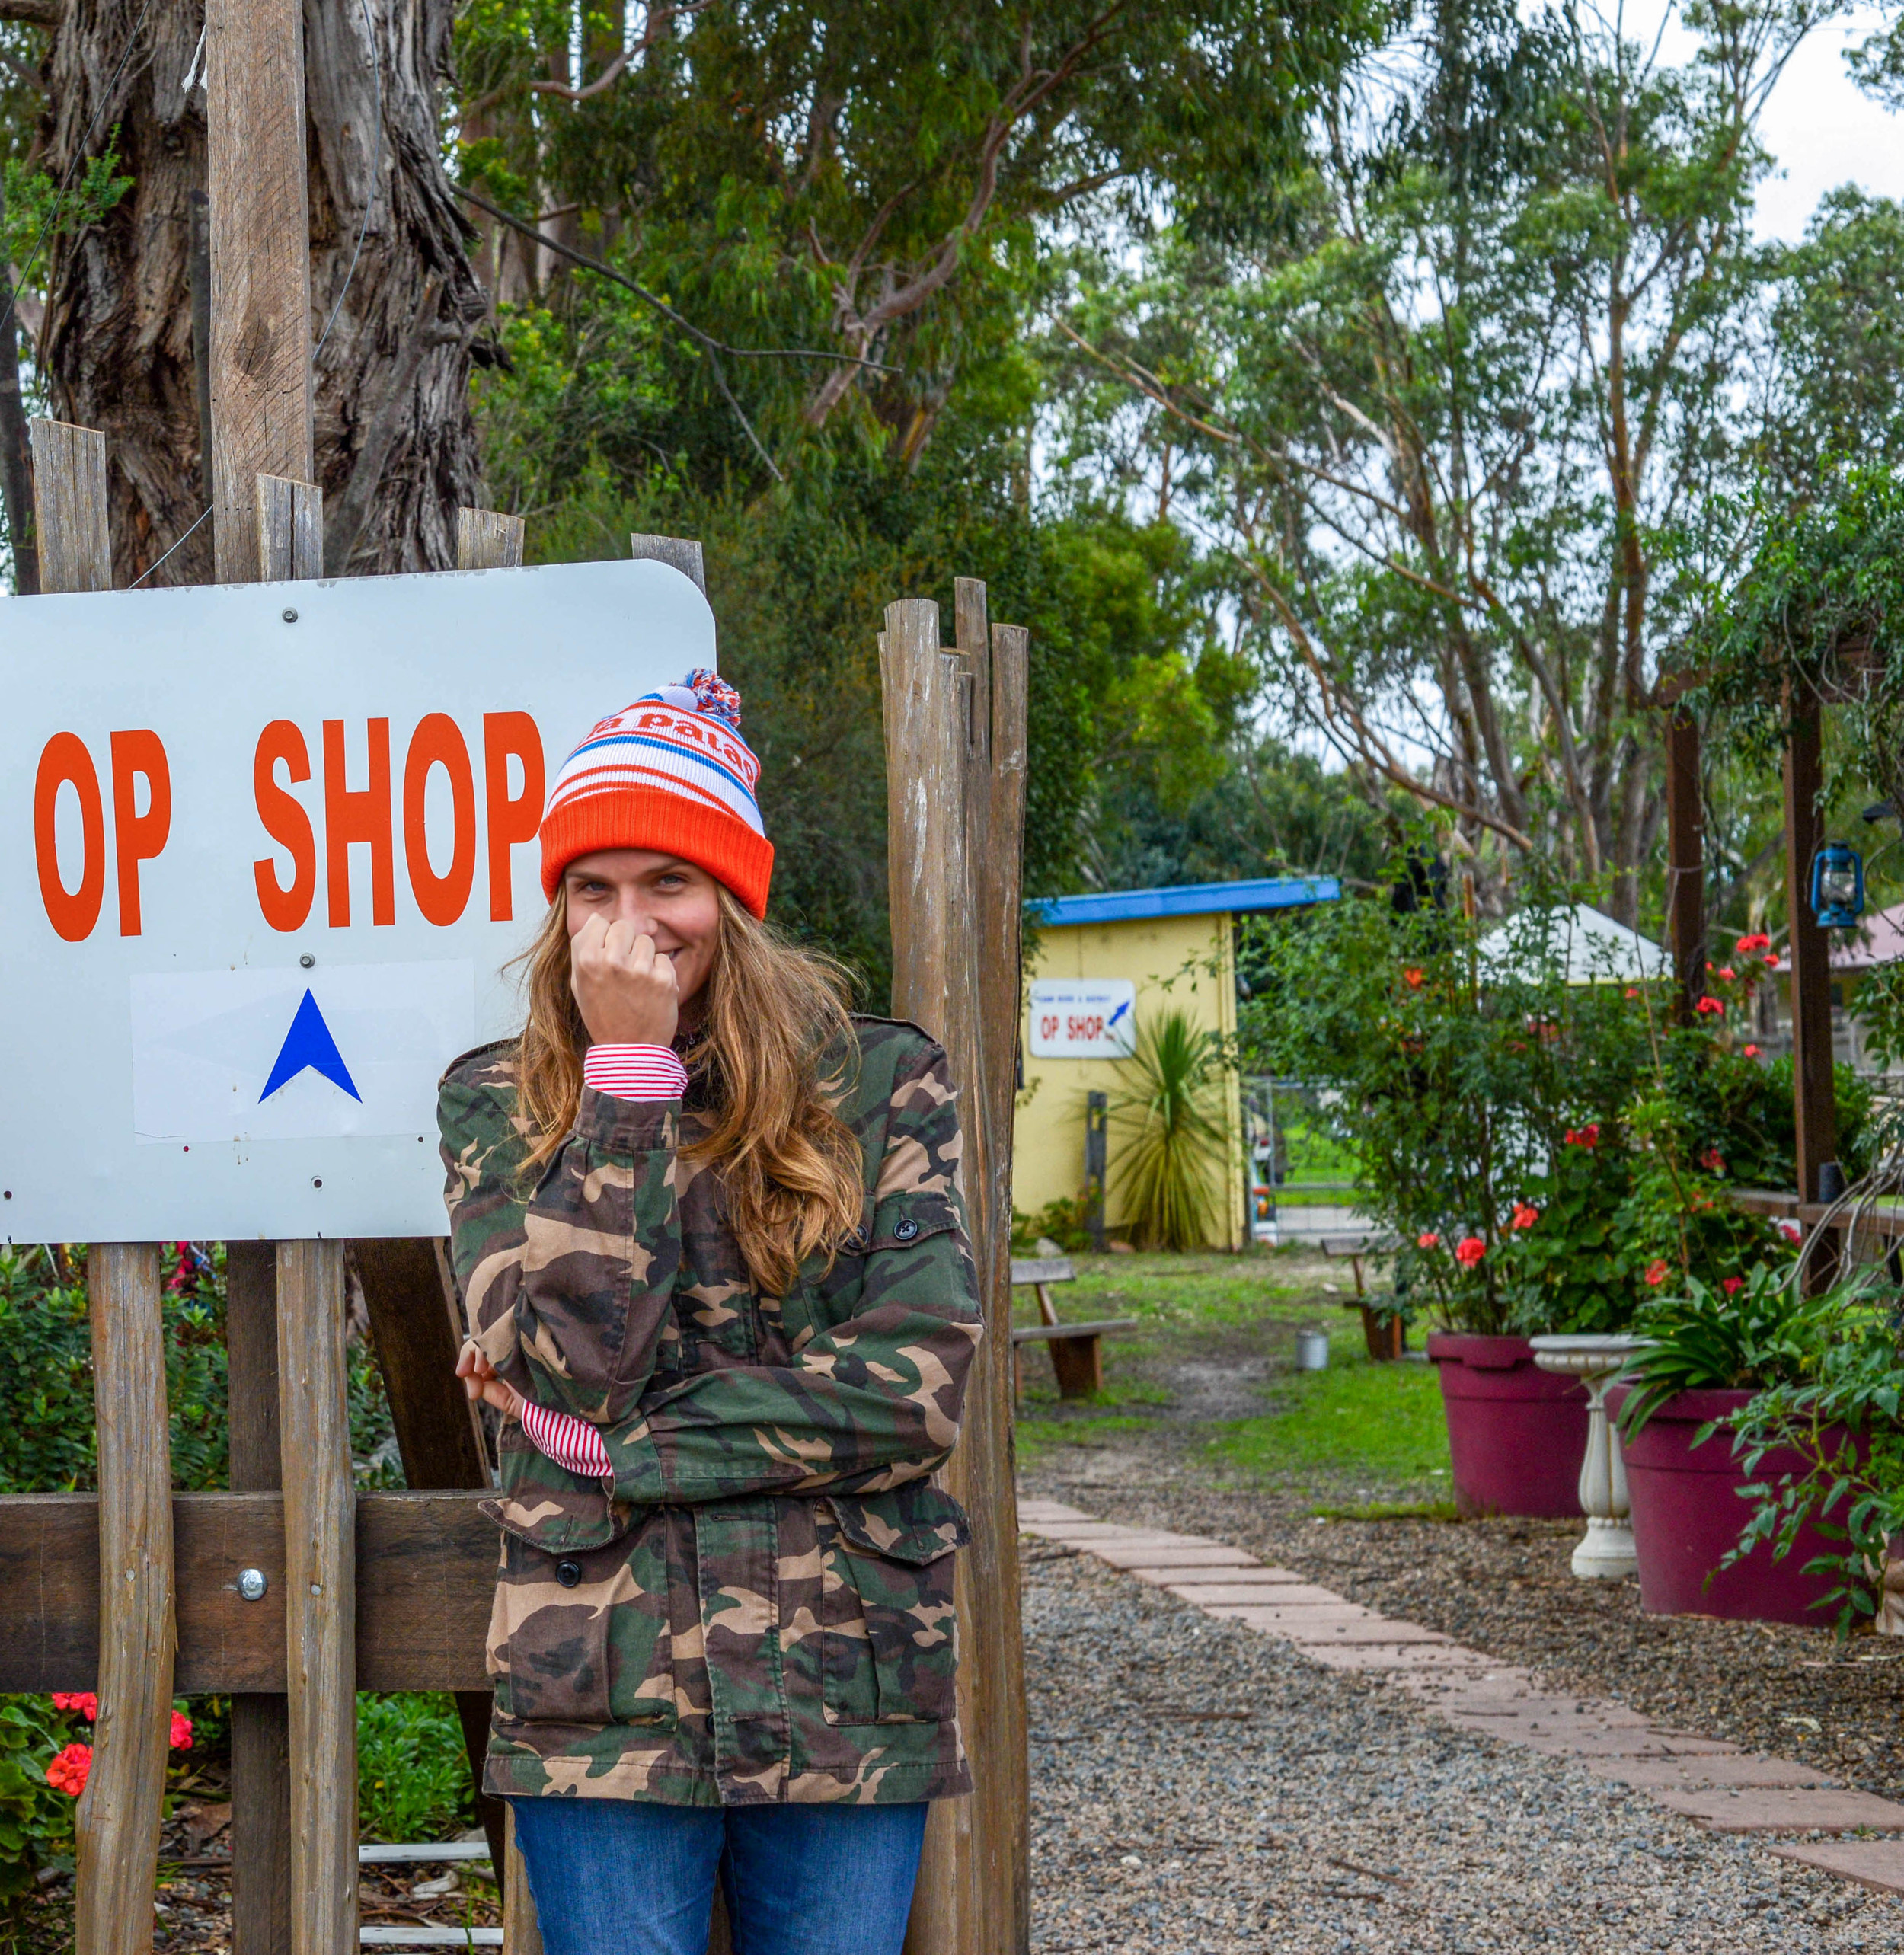 Popping tags in Cann River, New South Wales.